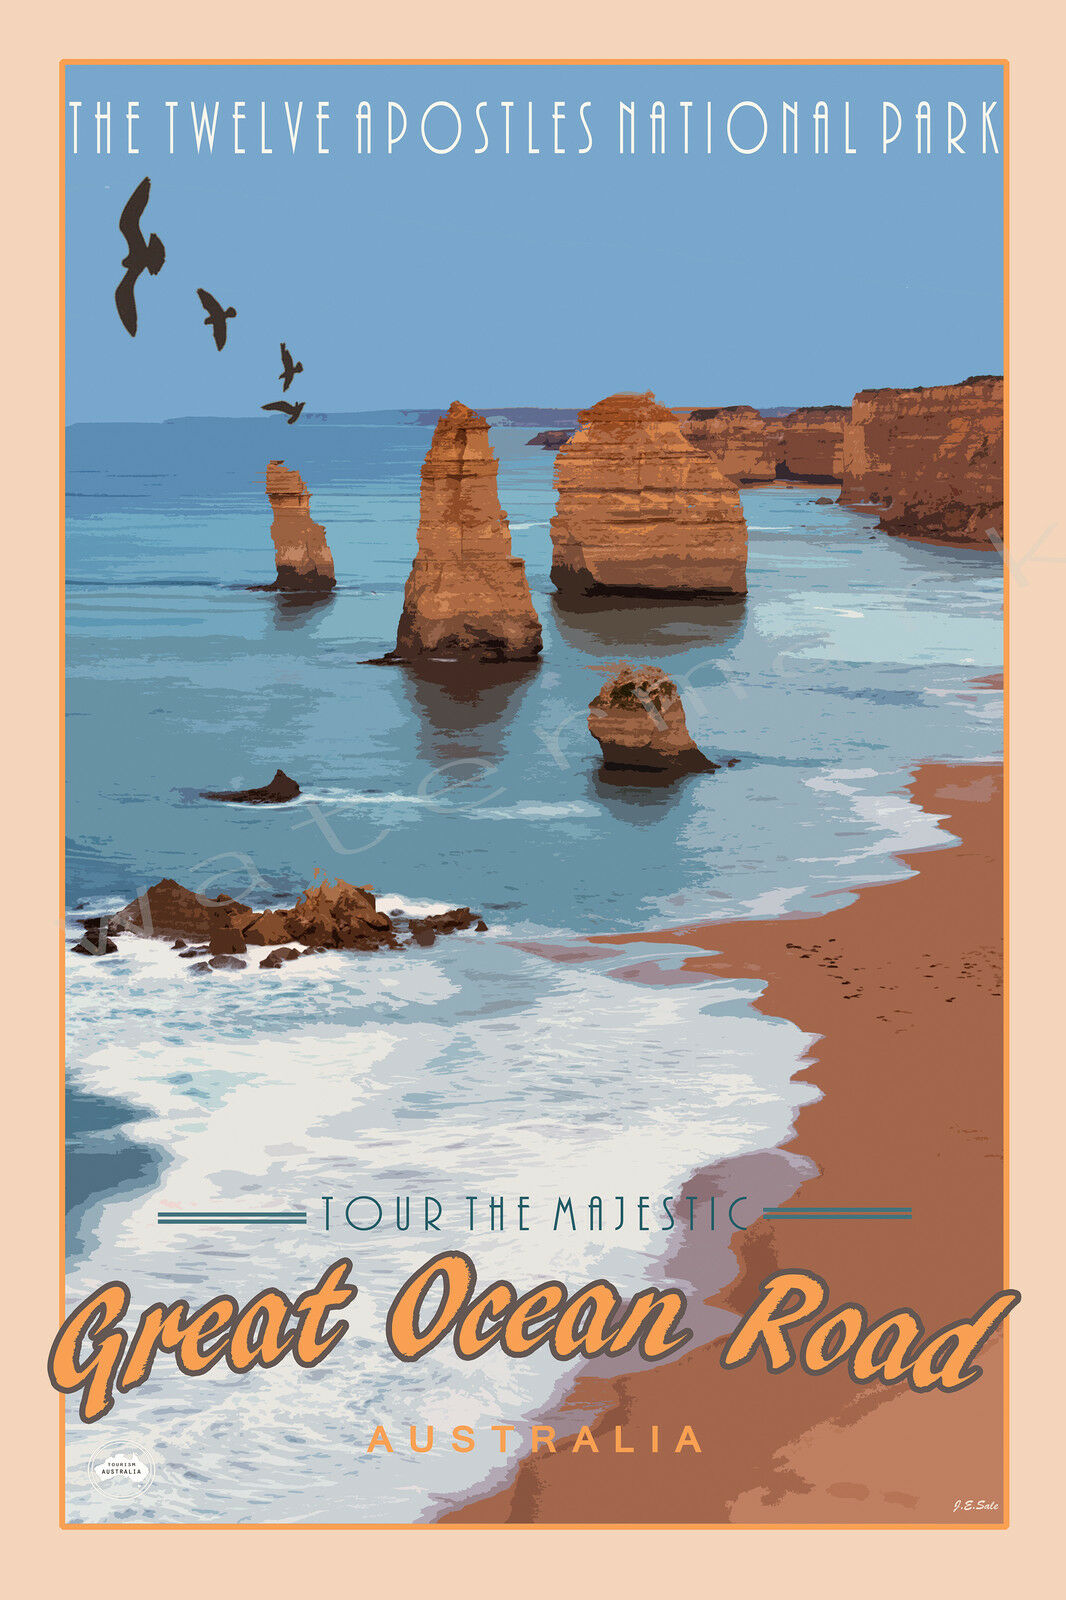 Iconic Great Ocean Road Scenic Travel Print. Limited Edition of 250 Signed Art